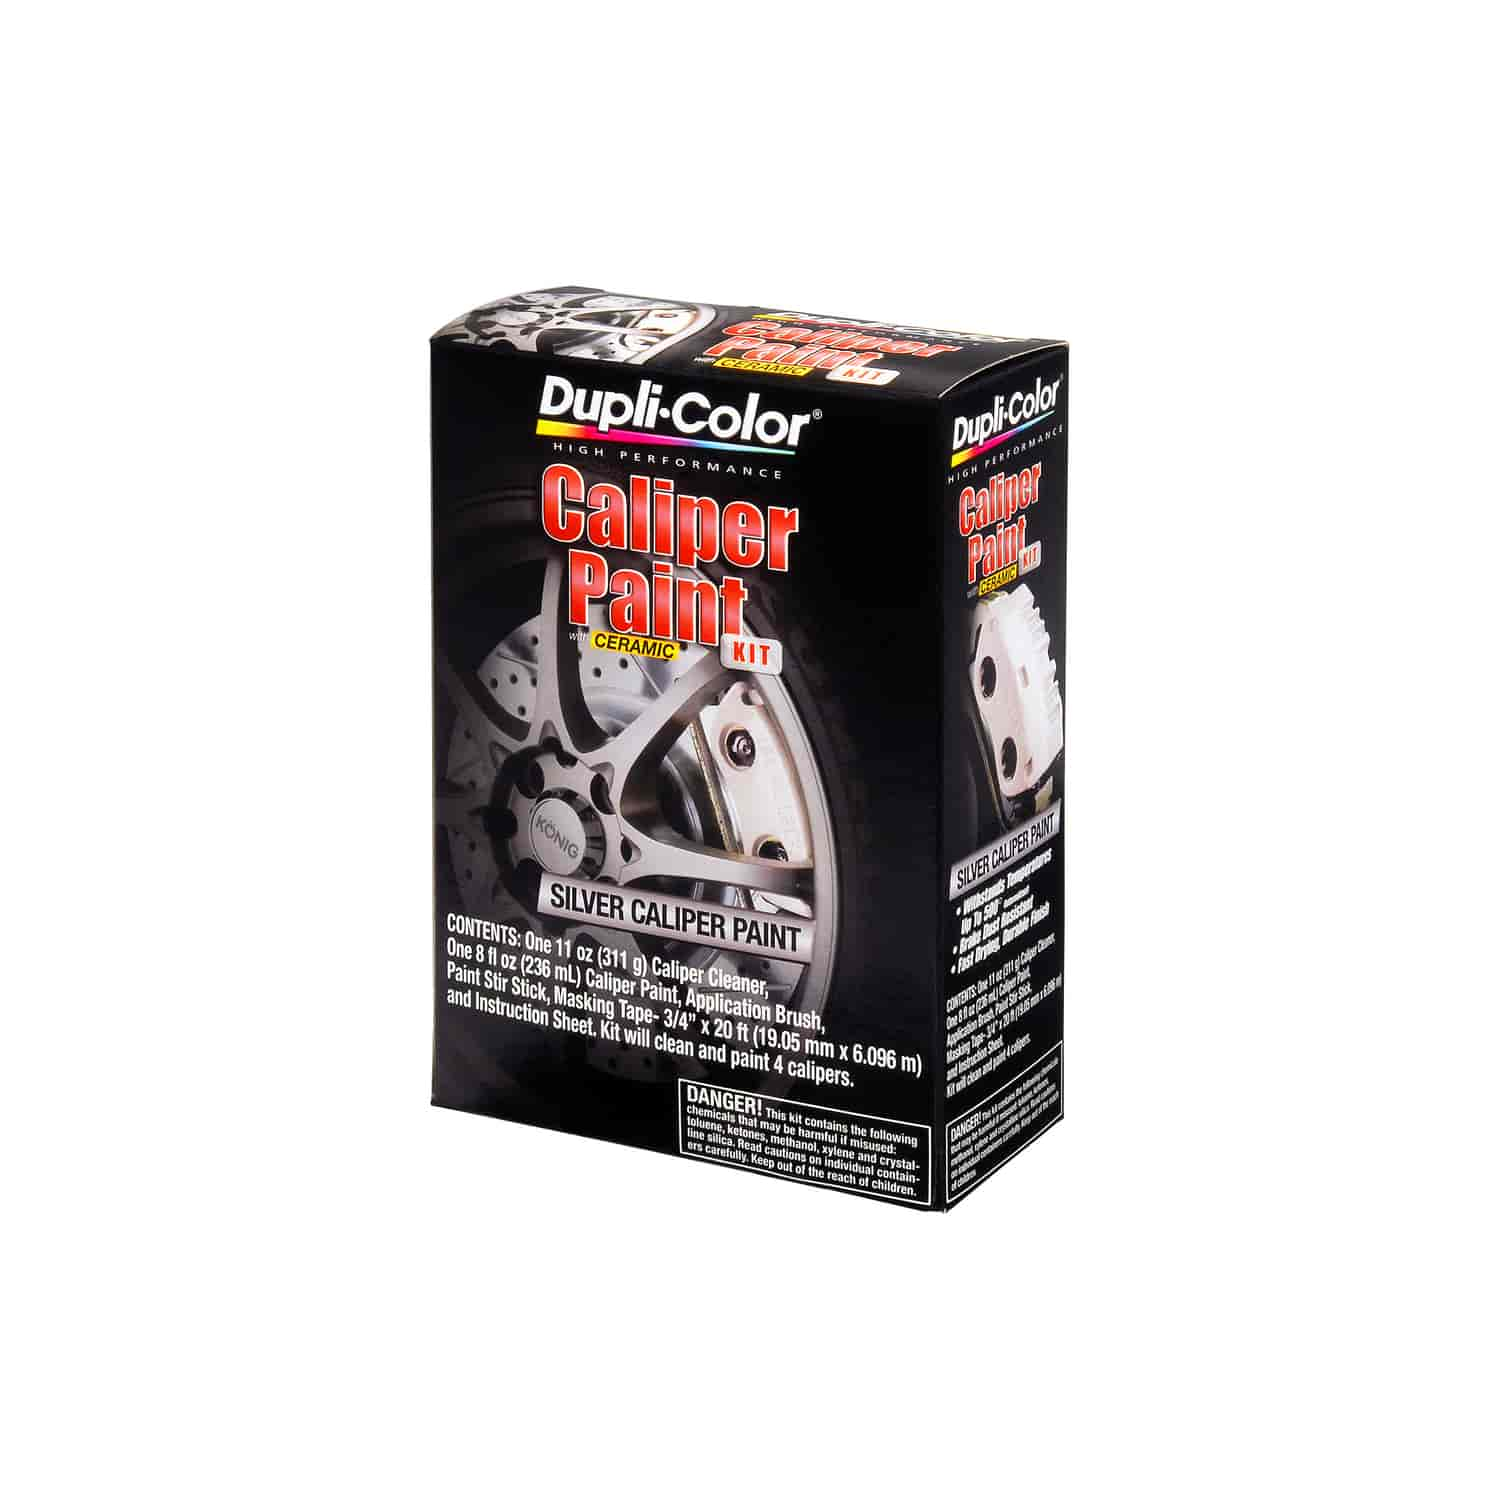 Duplicolor BCP403 - Duplicolor Brake Caliper Paint Kits